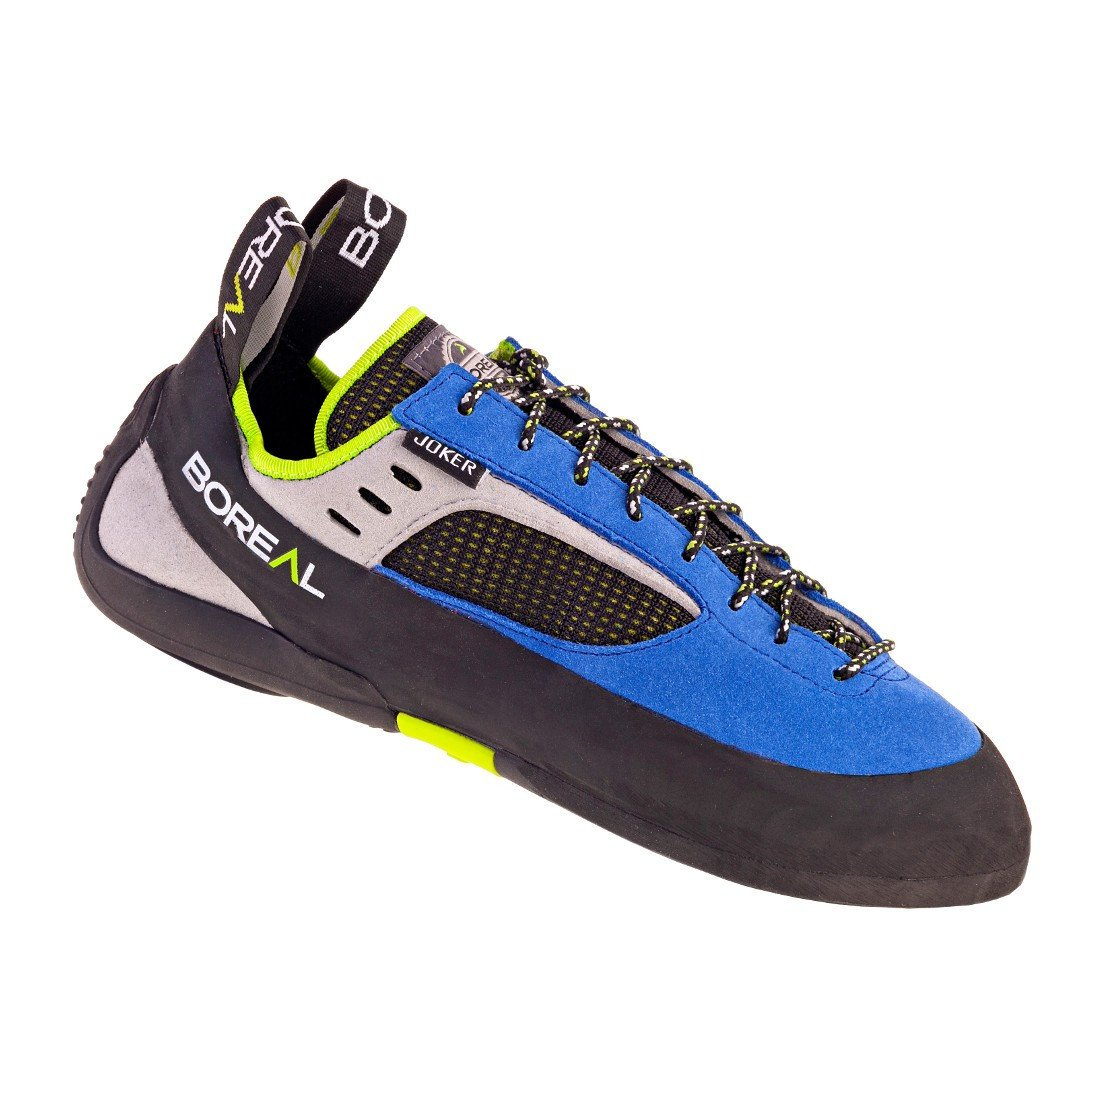 Boreal Joker Lace climbing shoe black, blue and grey